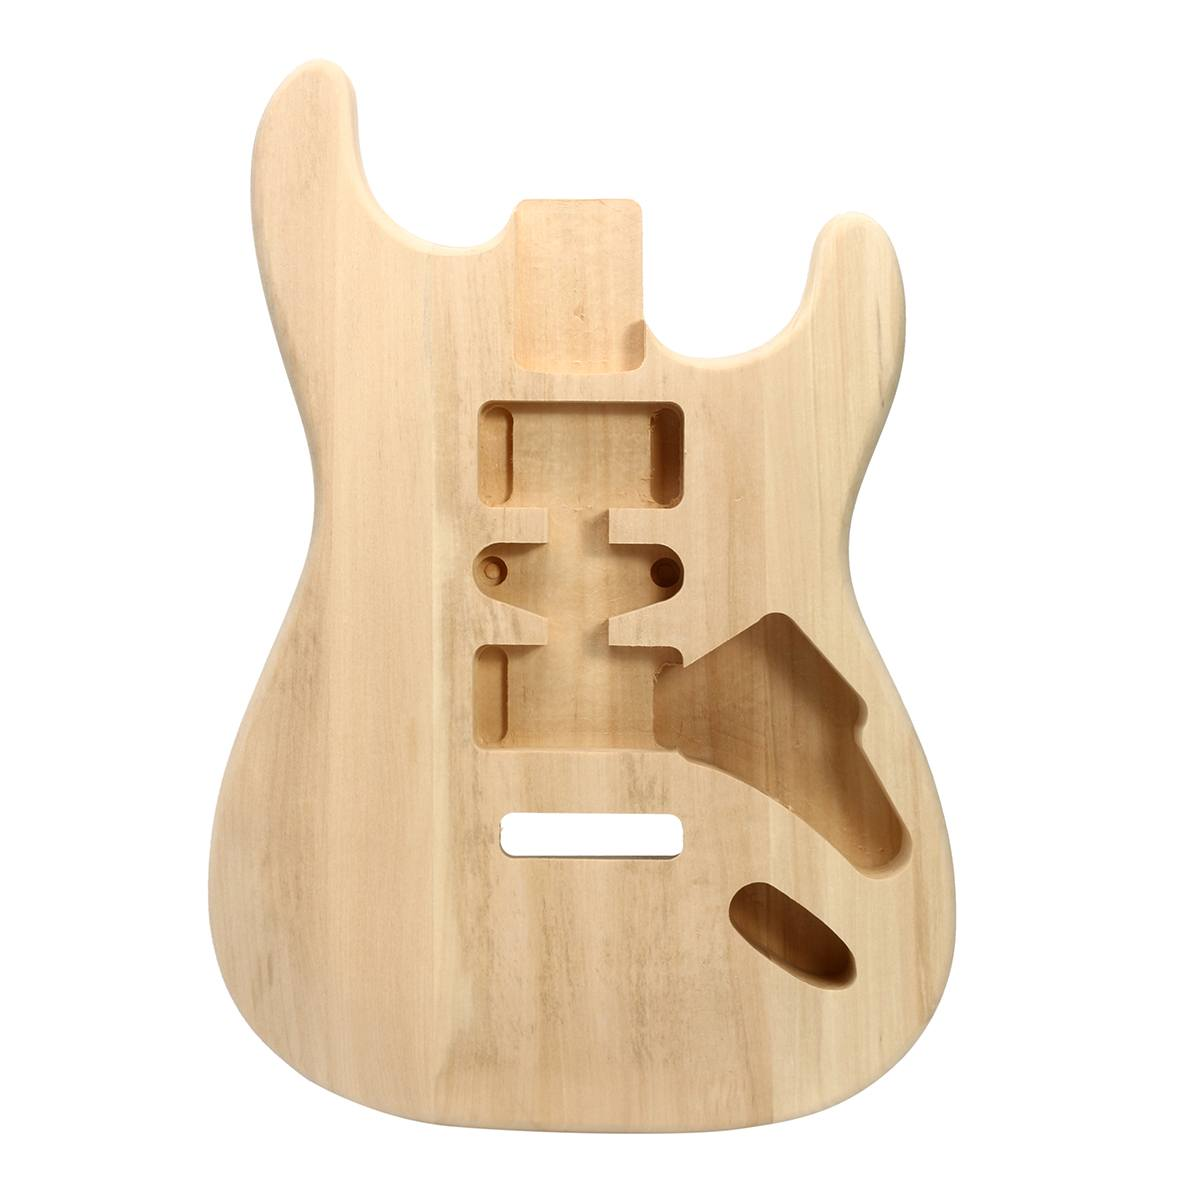 Unfinished Basswood Electric Guitar Body DIY Music Instrument Guitar Body Replacement Parts For Strings Guitars Accessories